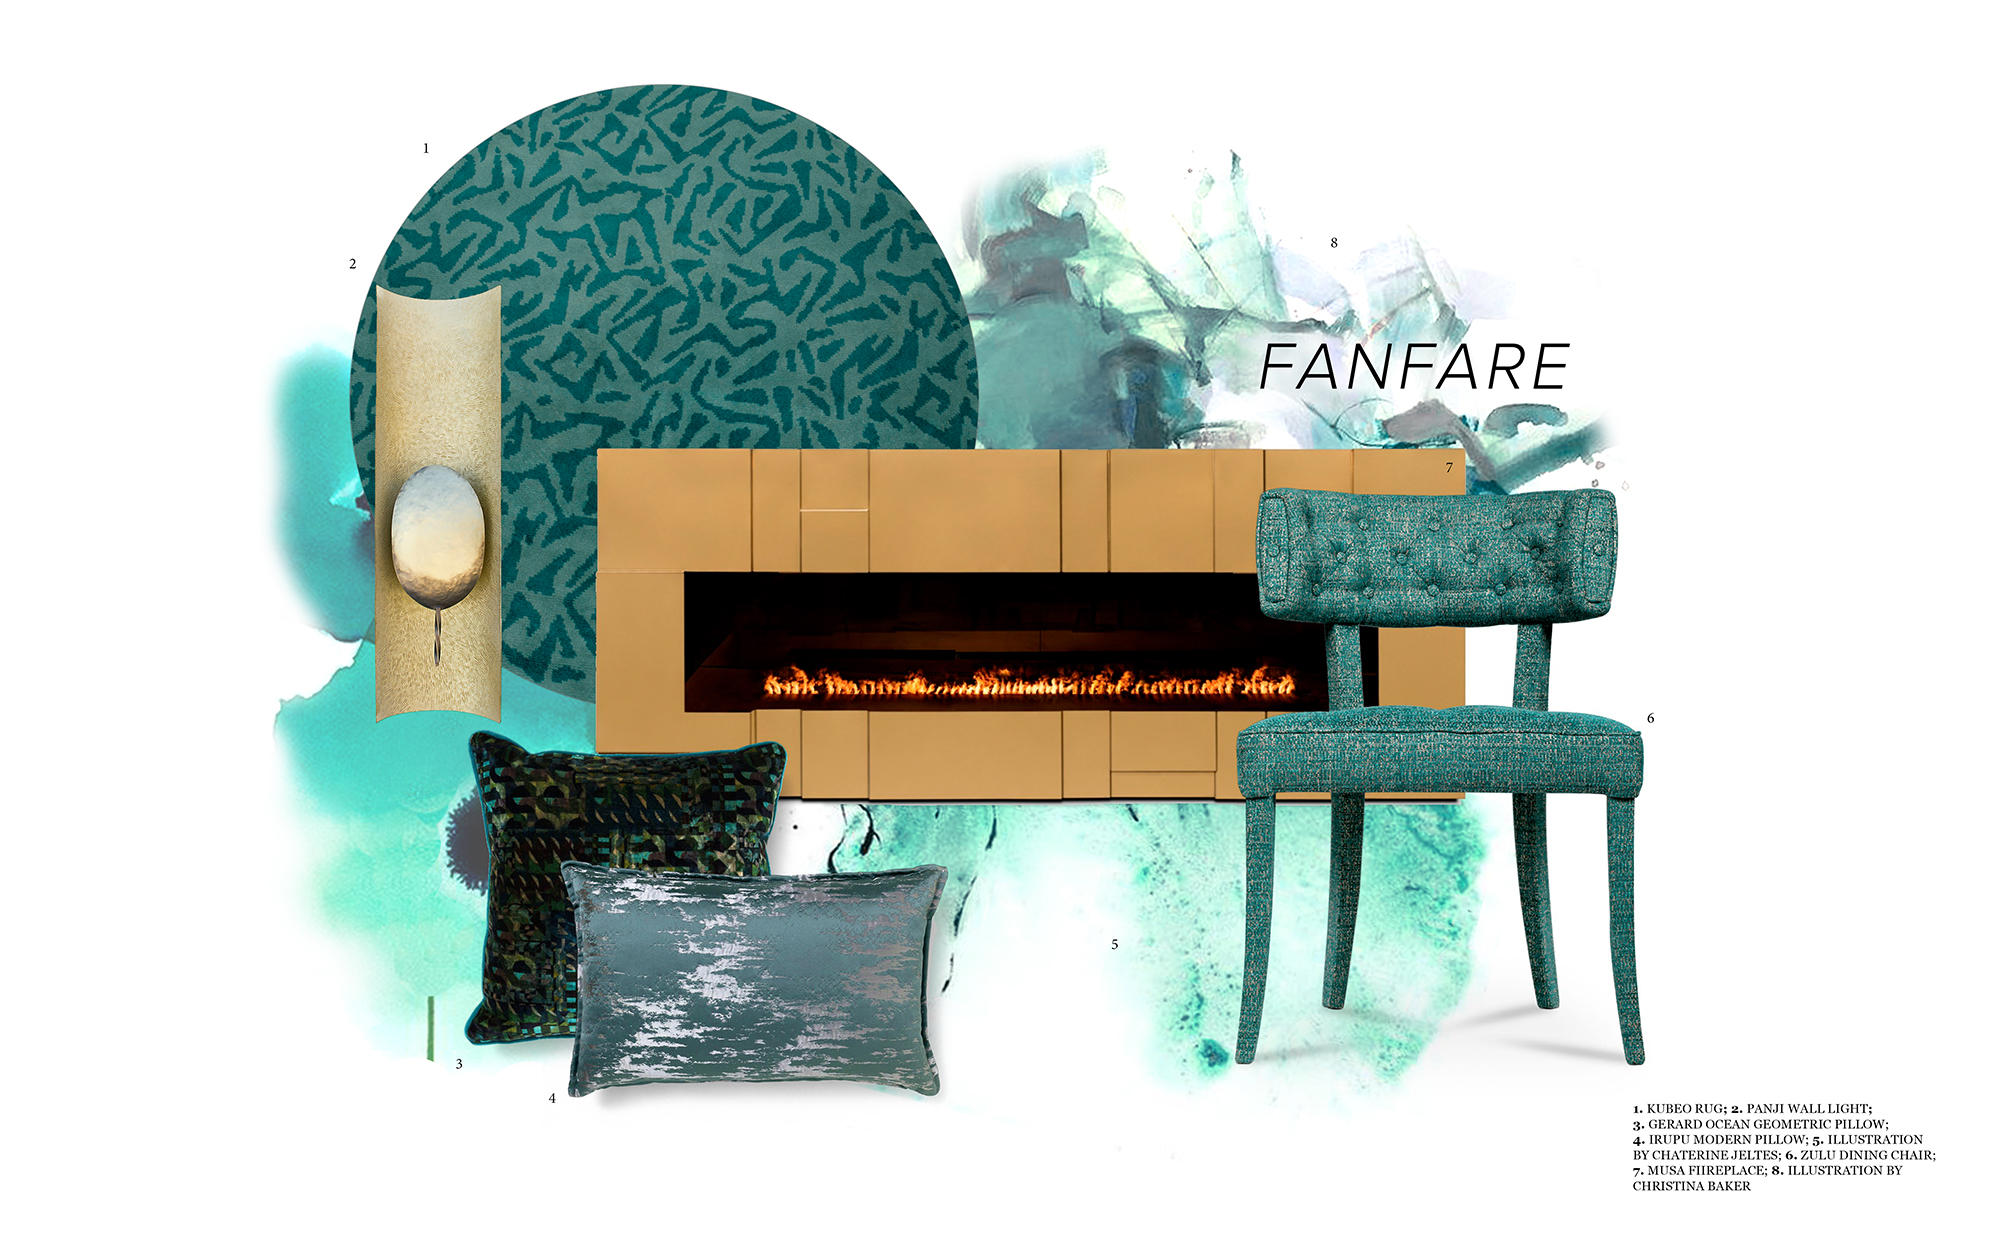 Fanfare Colour - Peacefulness Into Your Home Decoration fanfare Fanfare Colour – Peacefulness Into Your Home Decoration fanfare color